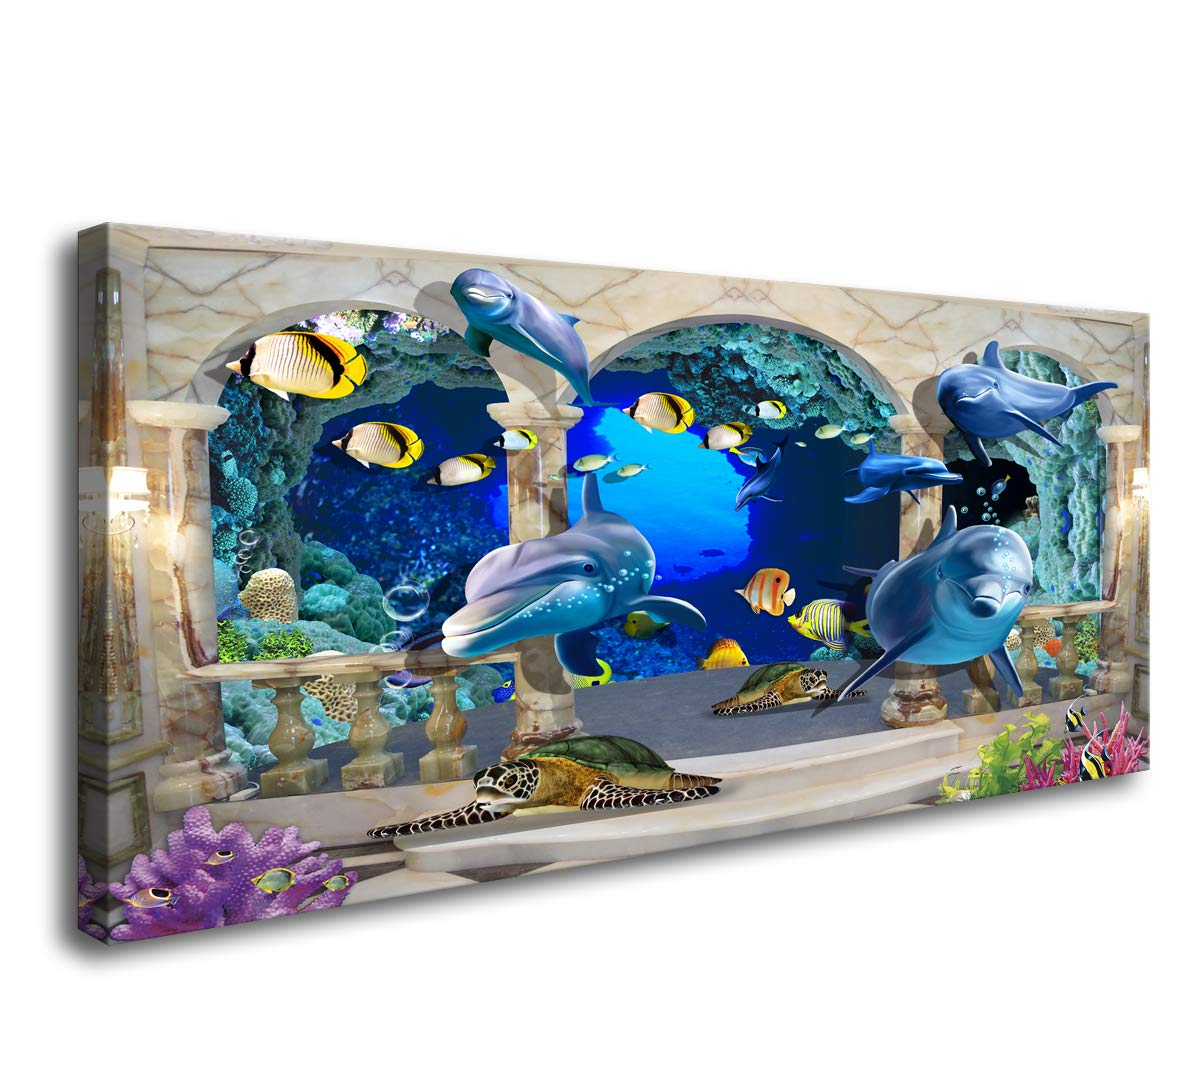 D72850 Canvas Wall Art 3D Dolphin Turtle and Fish Background Large Wall Decor Artwork Painting Ocean Decor for Living Room Bedroom Bathroom Decoration